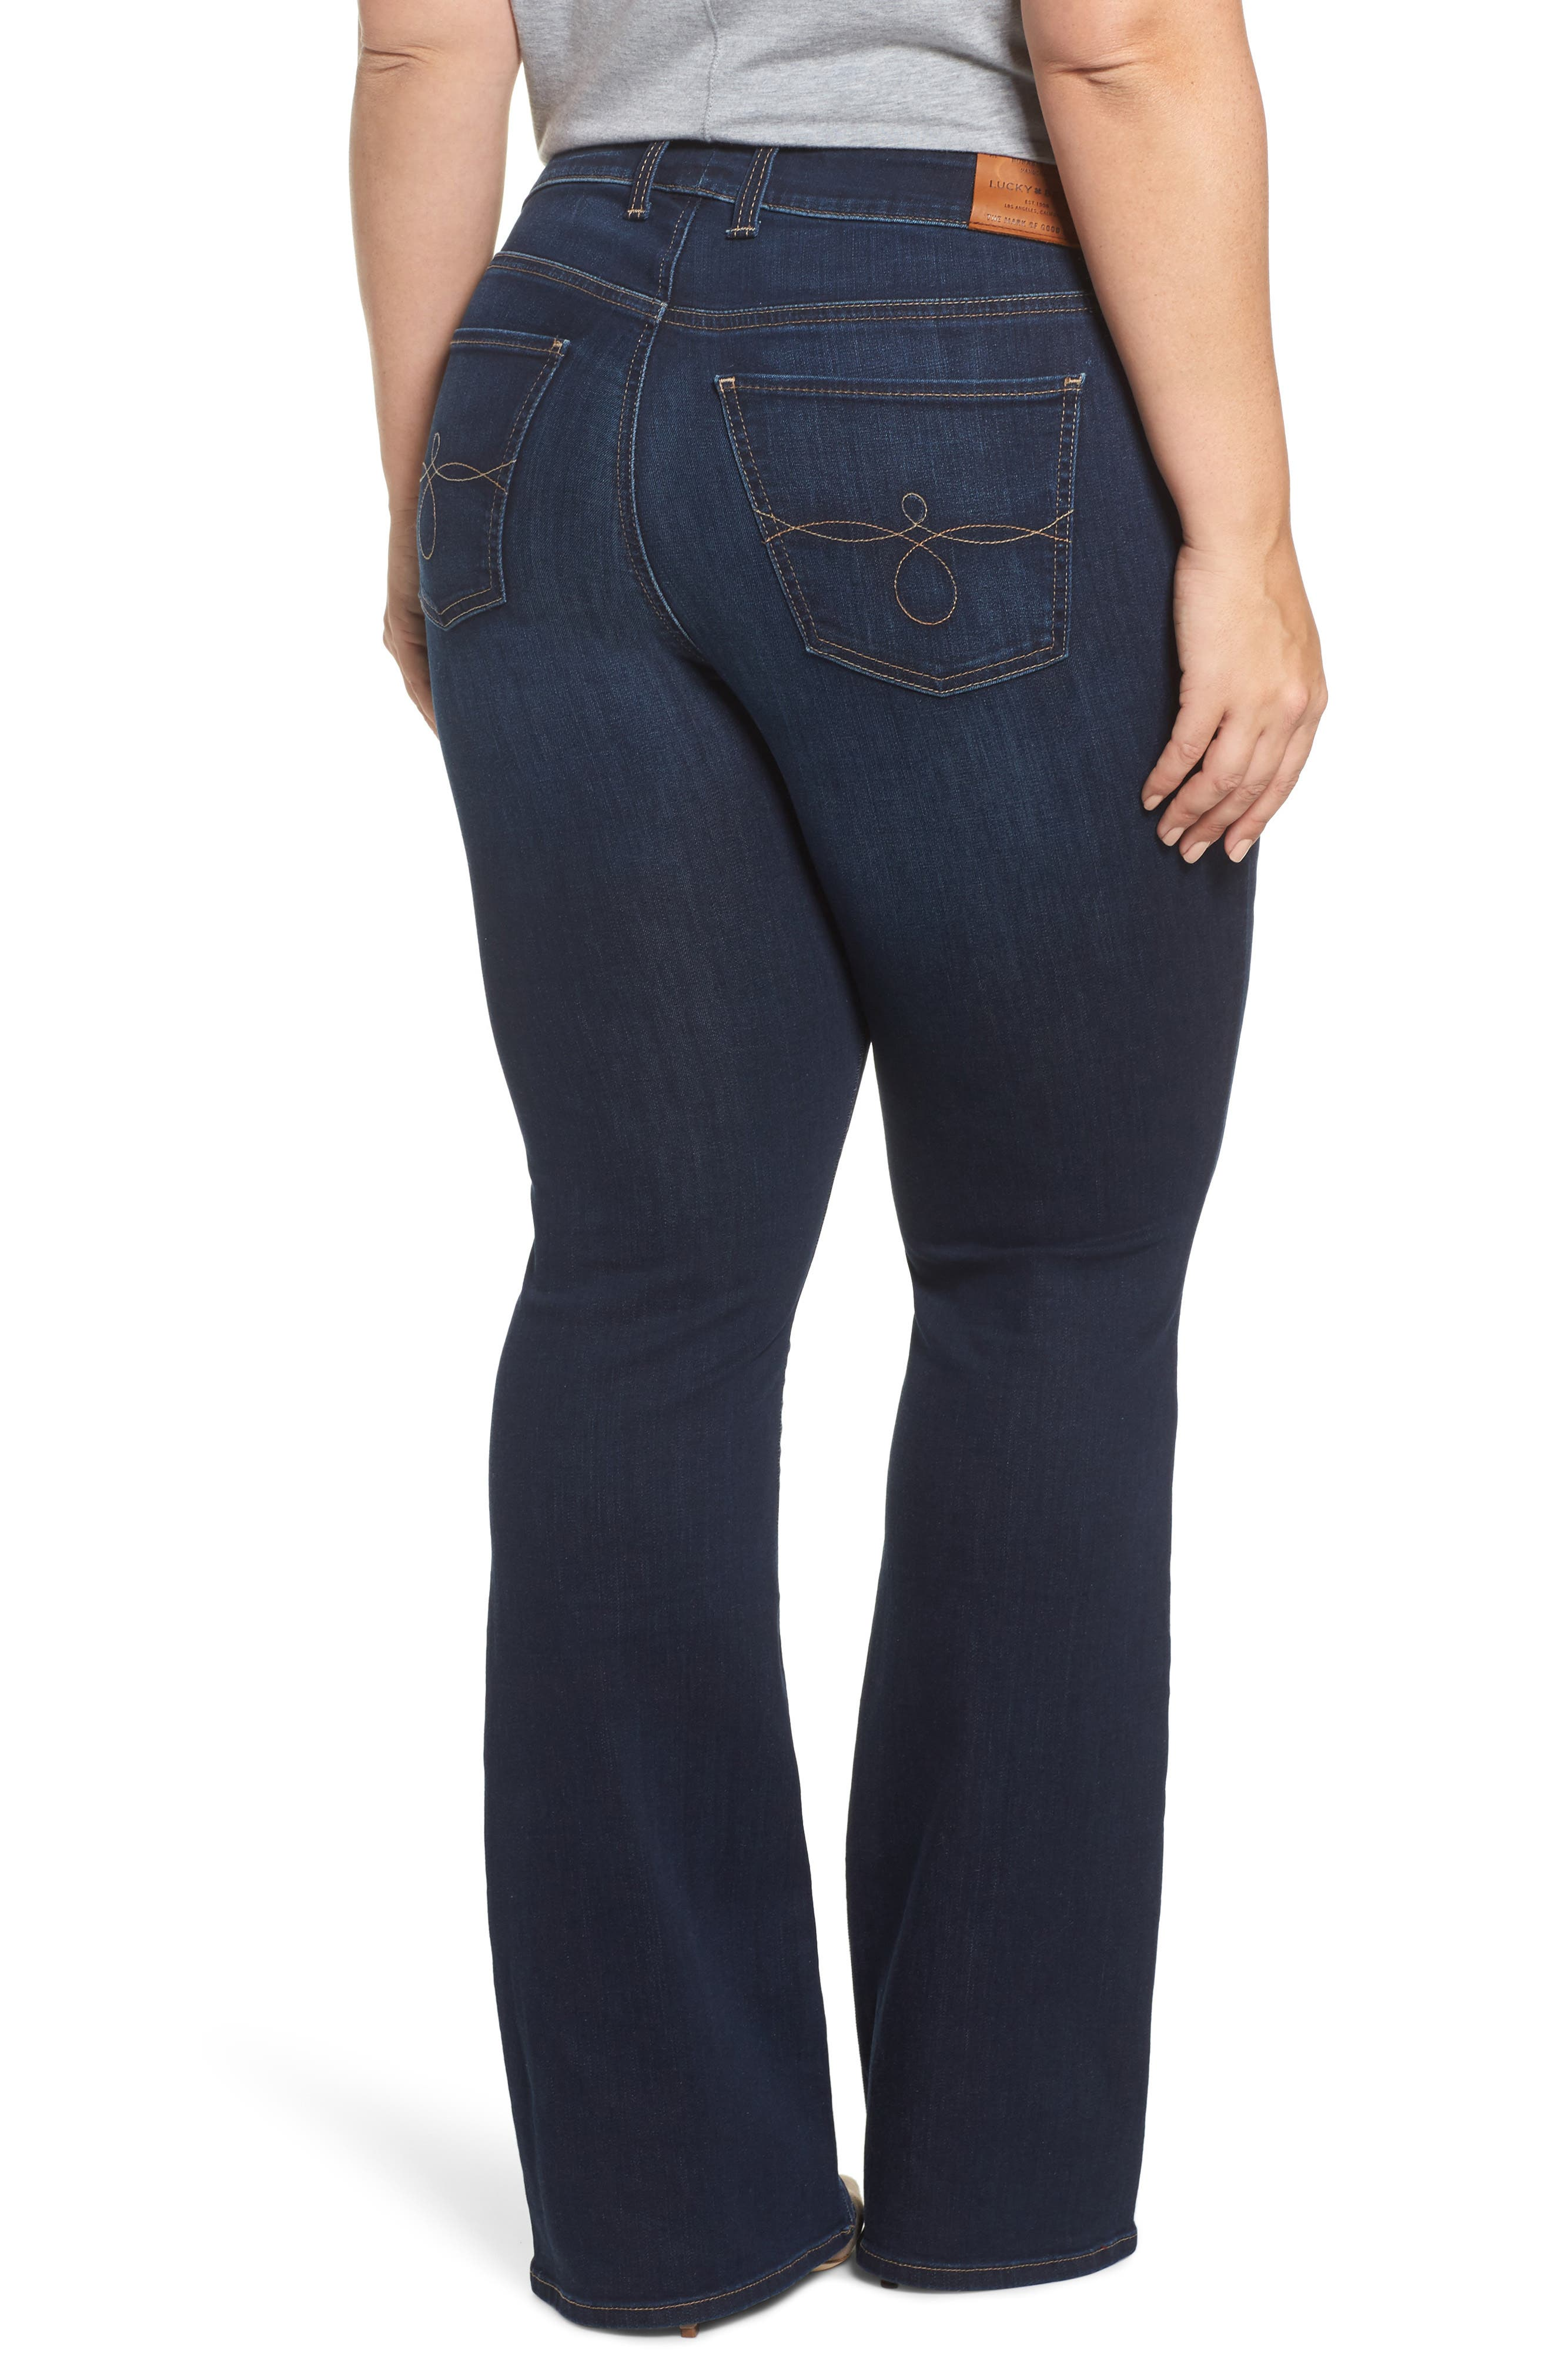 LUCKY BRAND, Ginger Bootcut Jeans, Alternate thumbnail 2, color, TWILIGHT BLUE